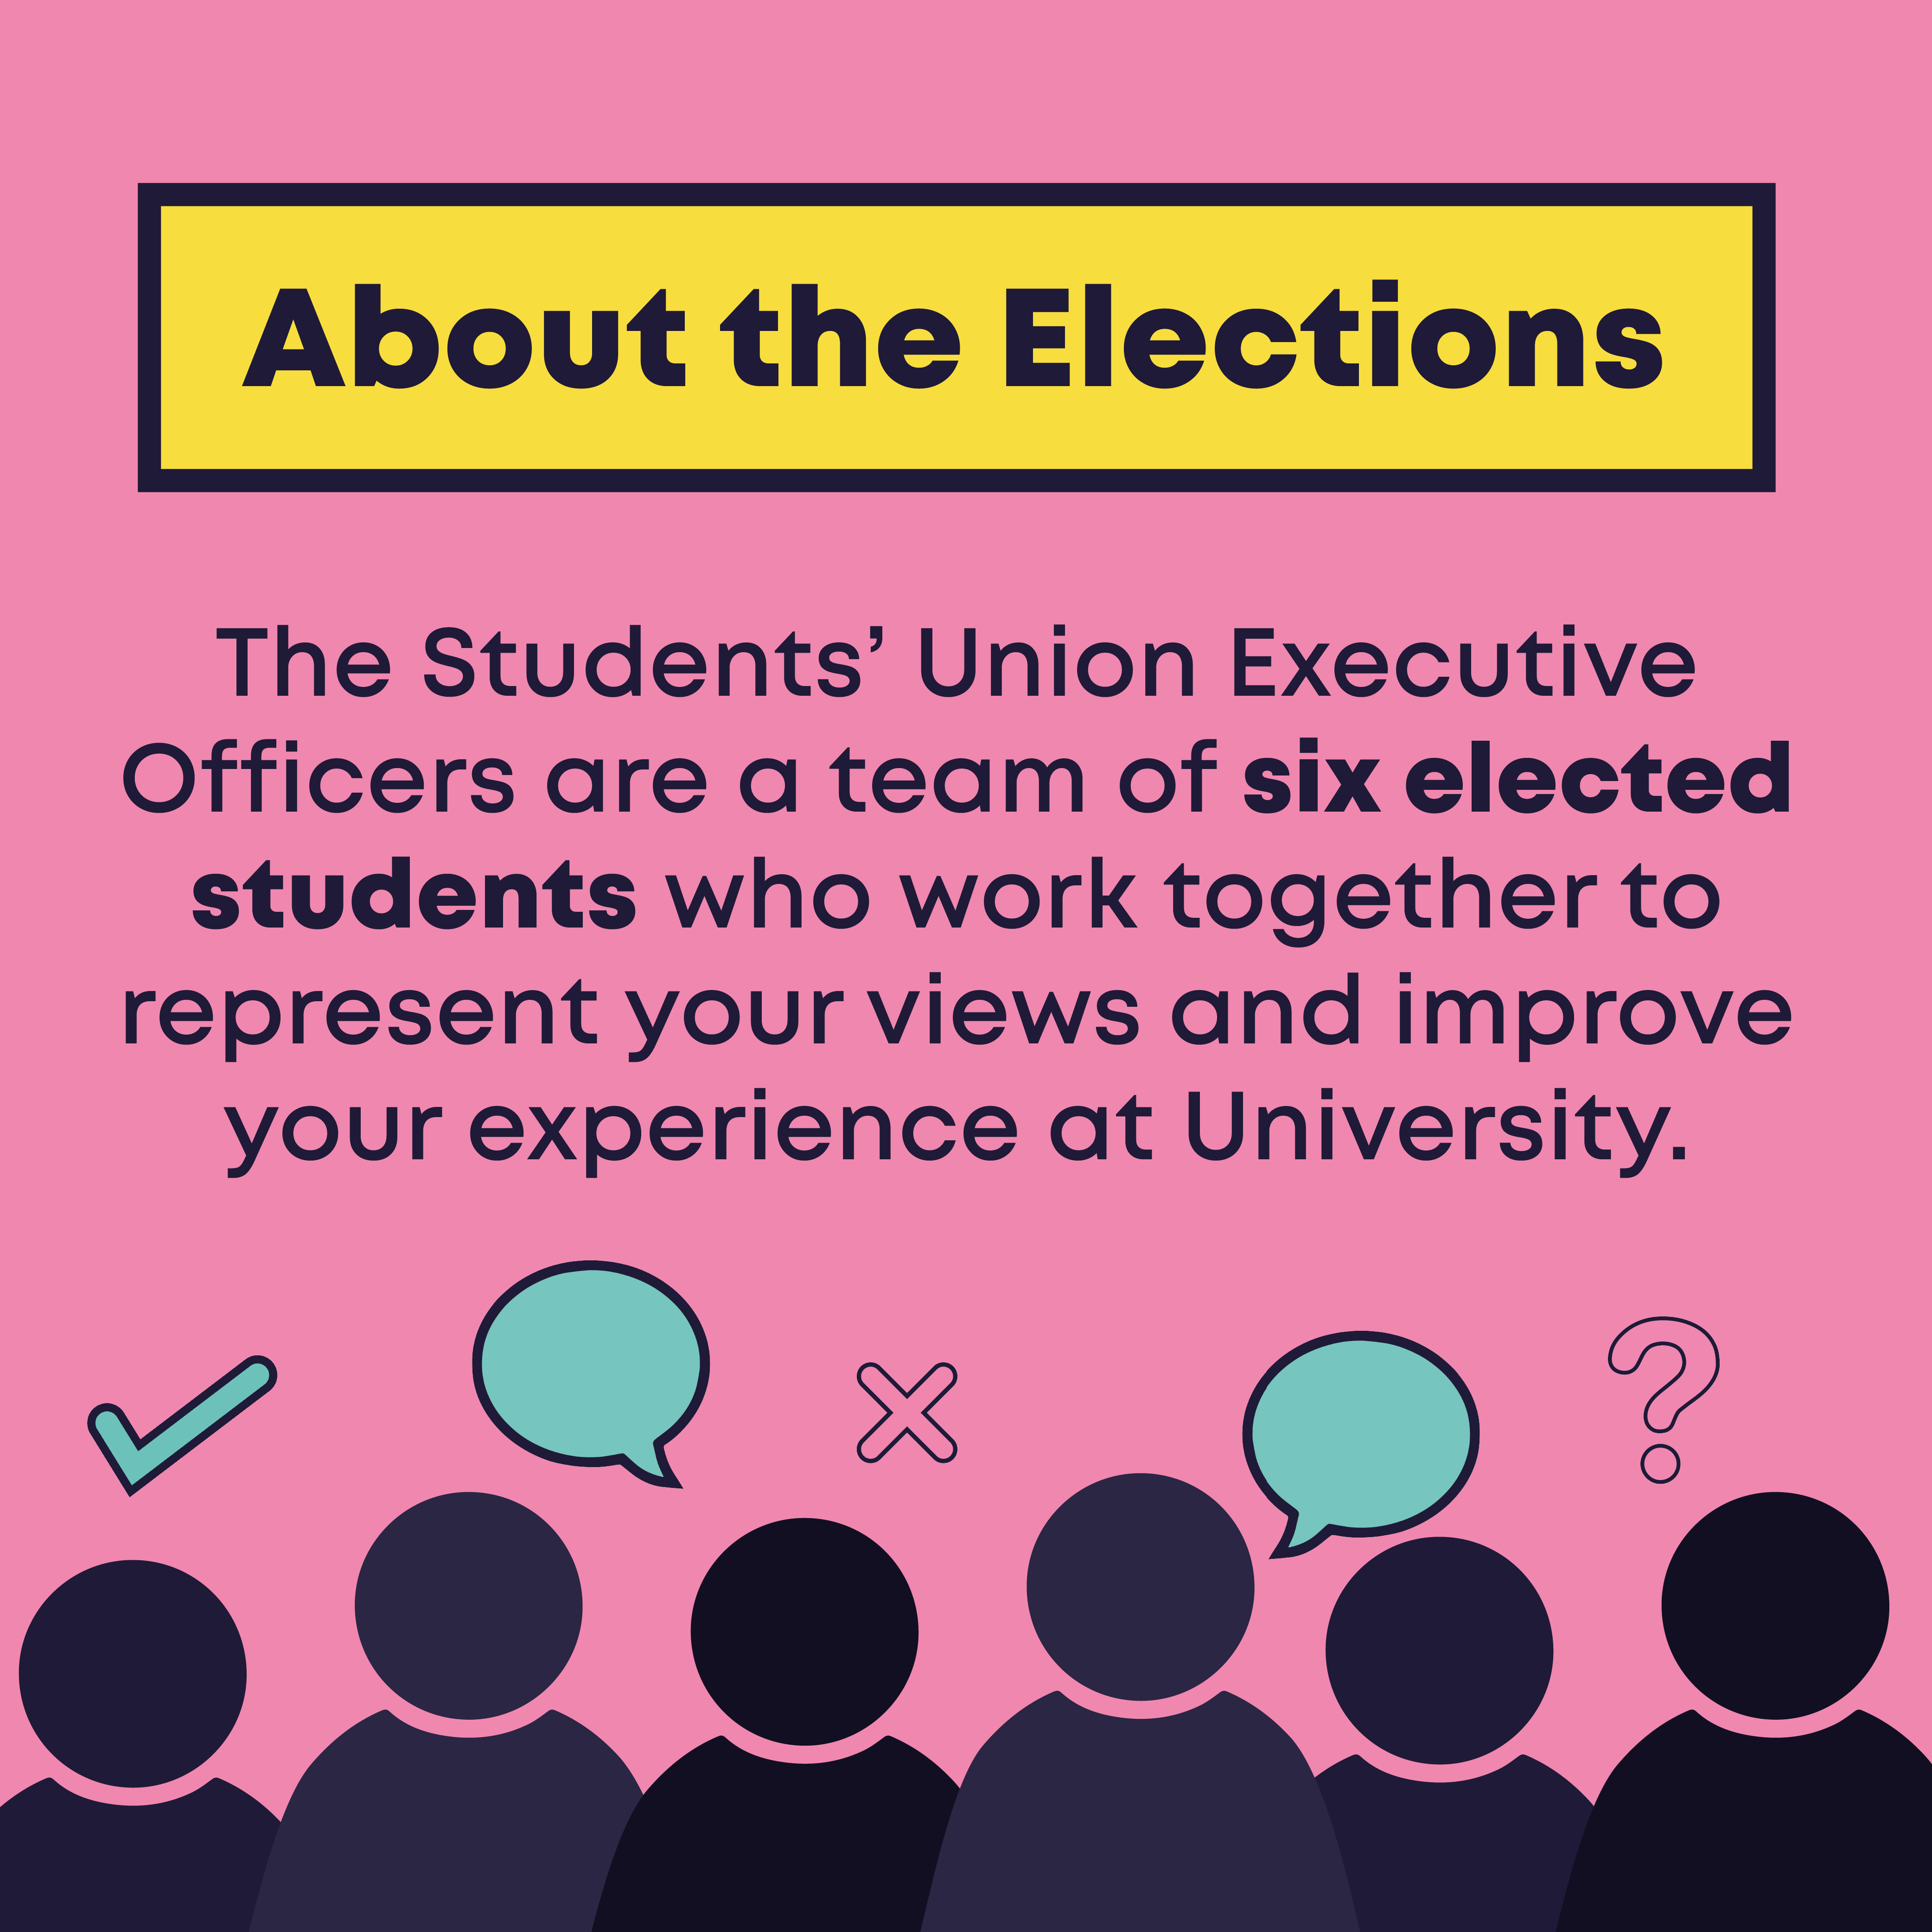 About the Elections. The Students' Union Executive Officers are a team of six elected students who work together to represent your views and improve your experience at University.